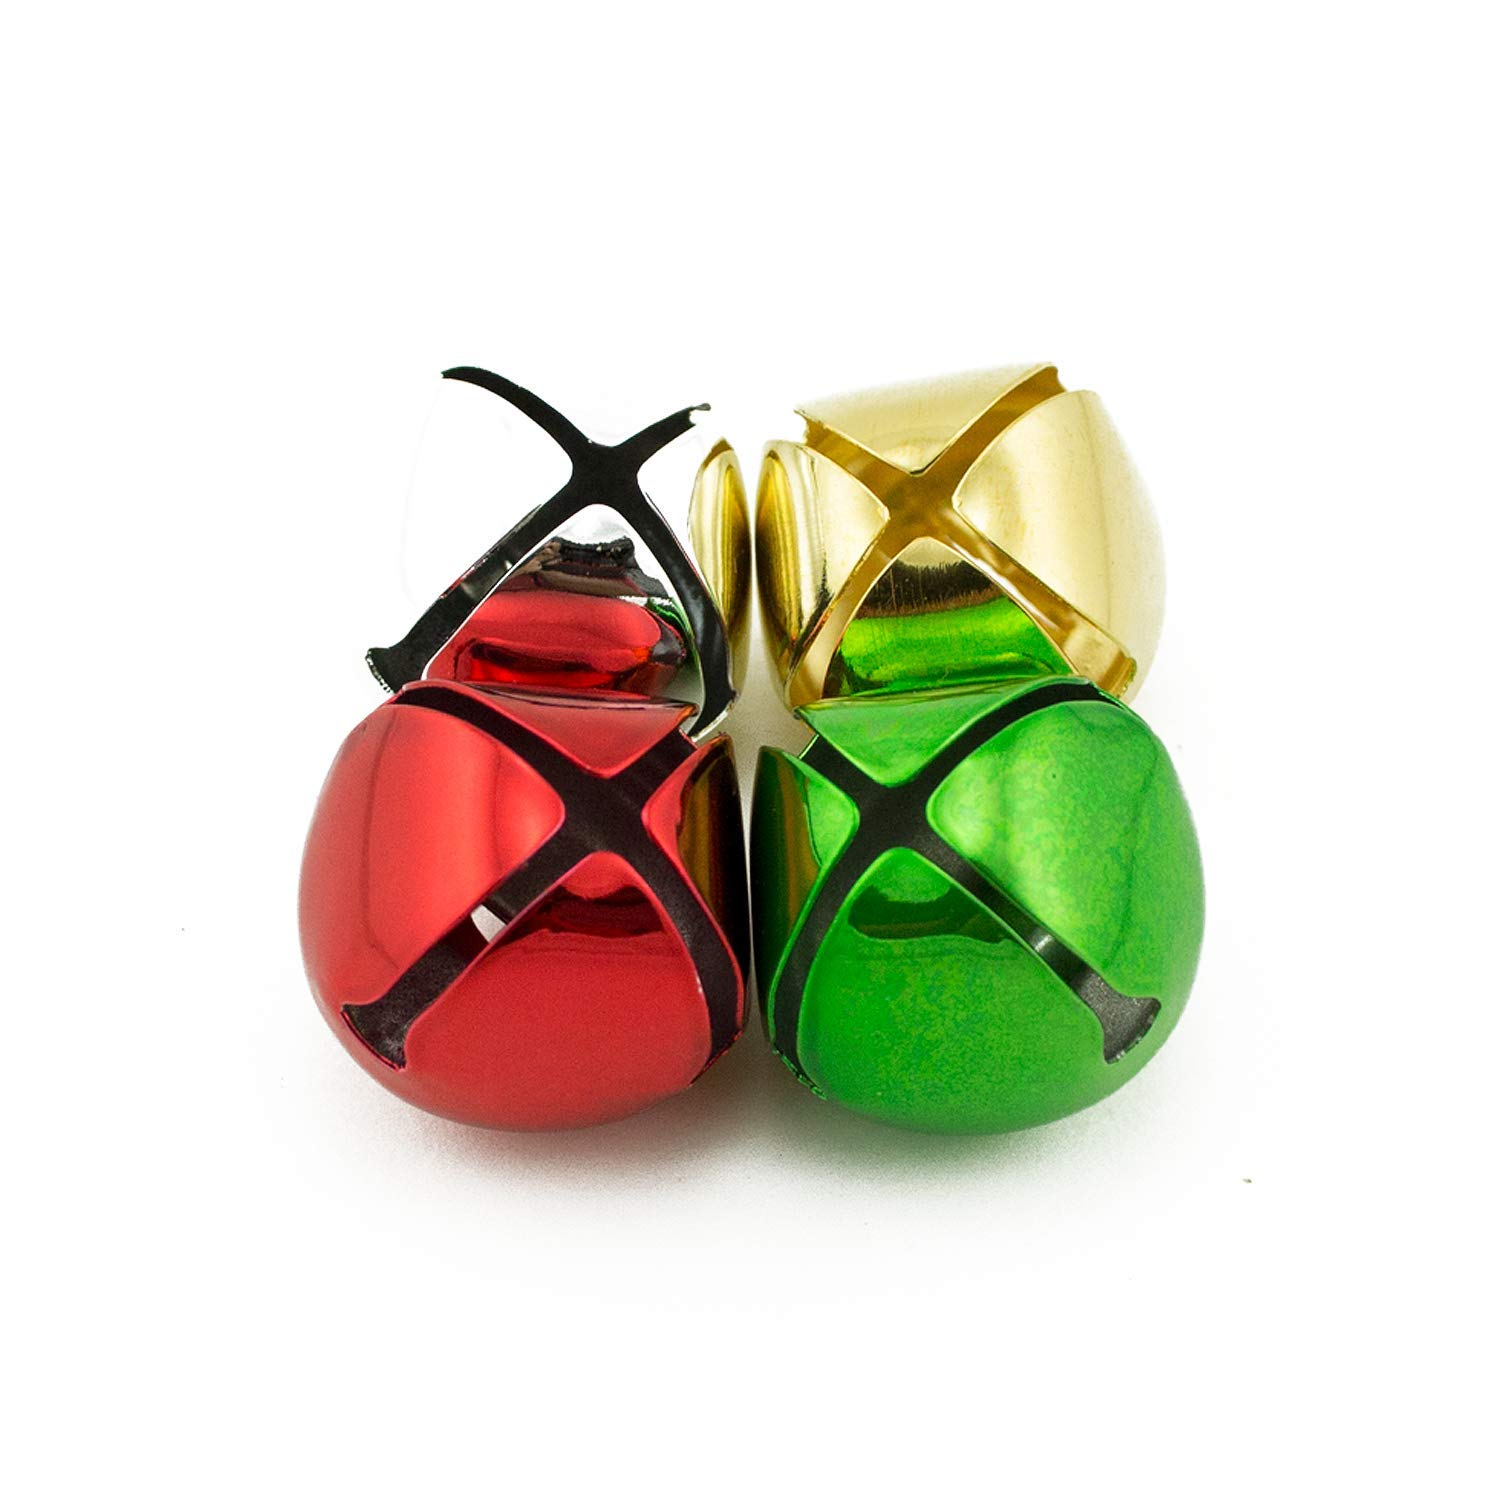 1 inch 25mm Gold Silver Red Green Mix Large Craft Jingle Bells Bulk 144 Pieces by Art Cove (Image #3)